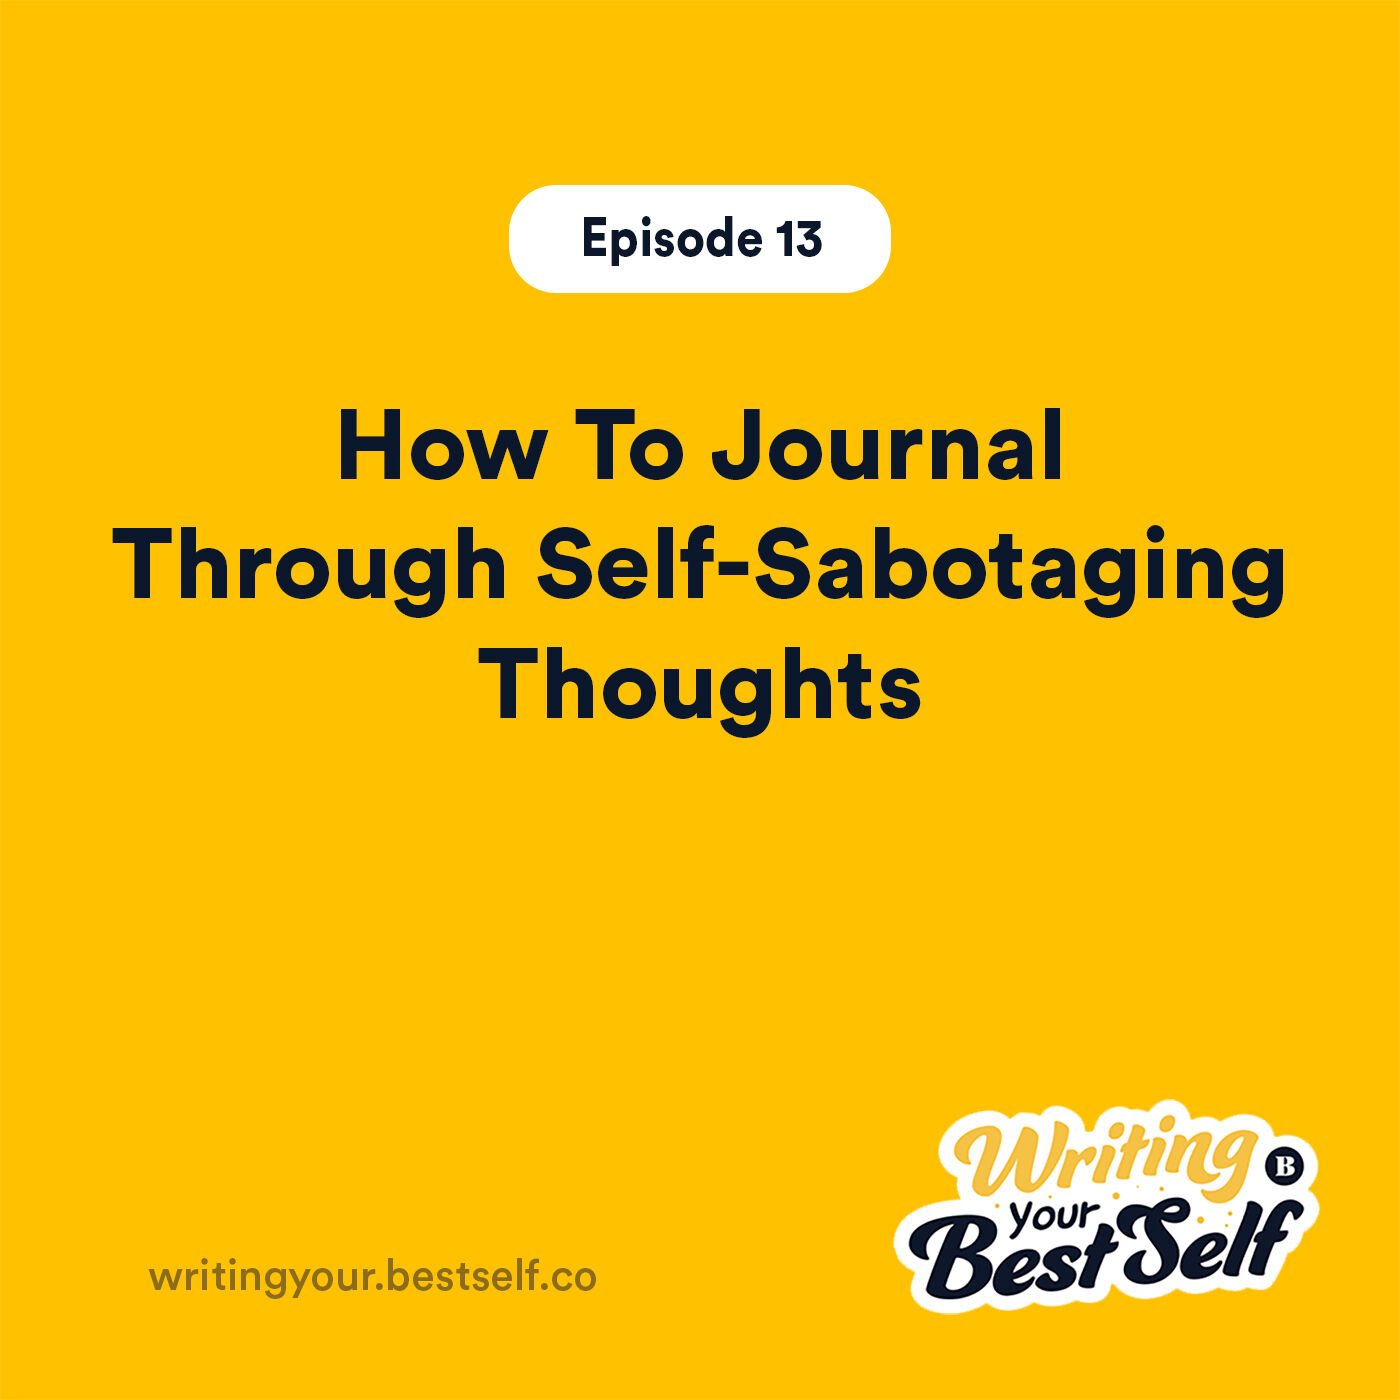 How To Journal Through Self-Sabotaging Thoughts